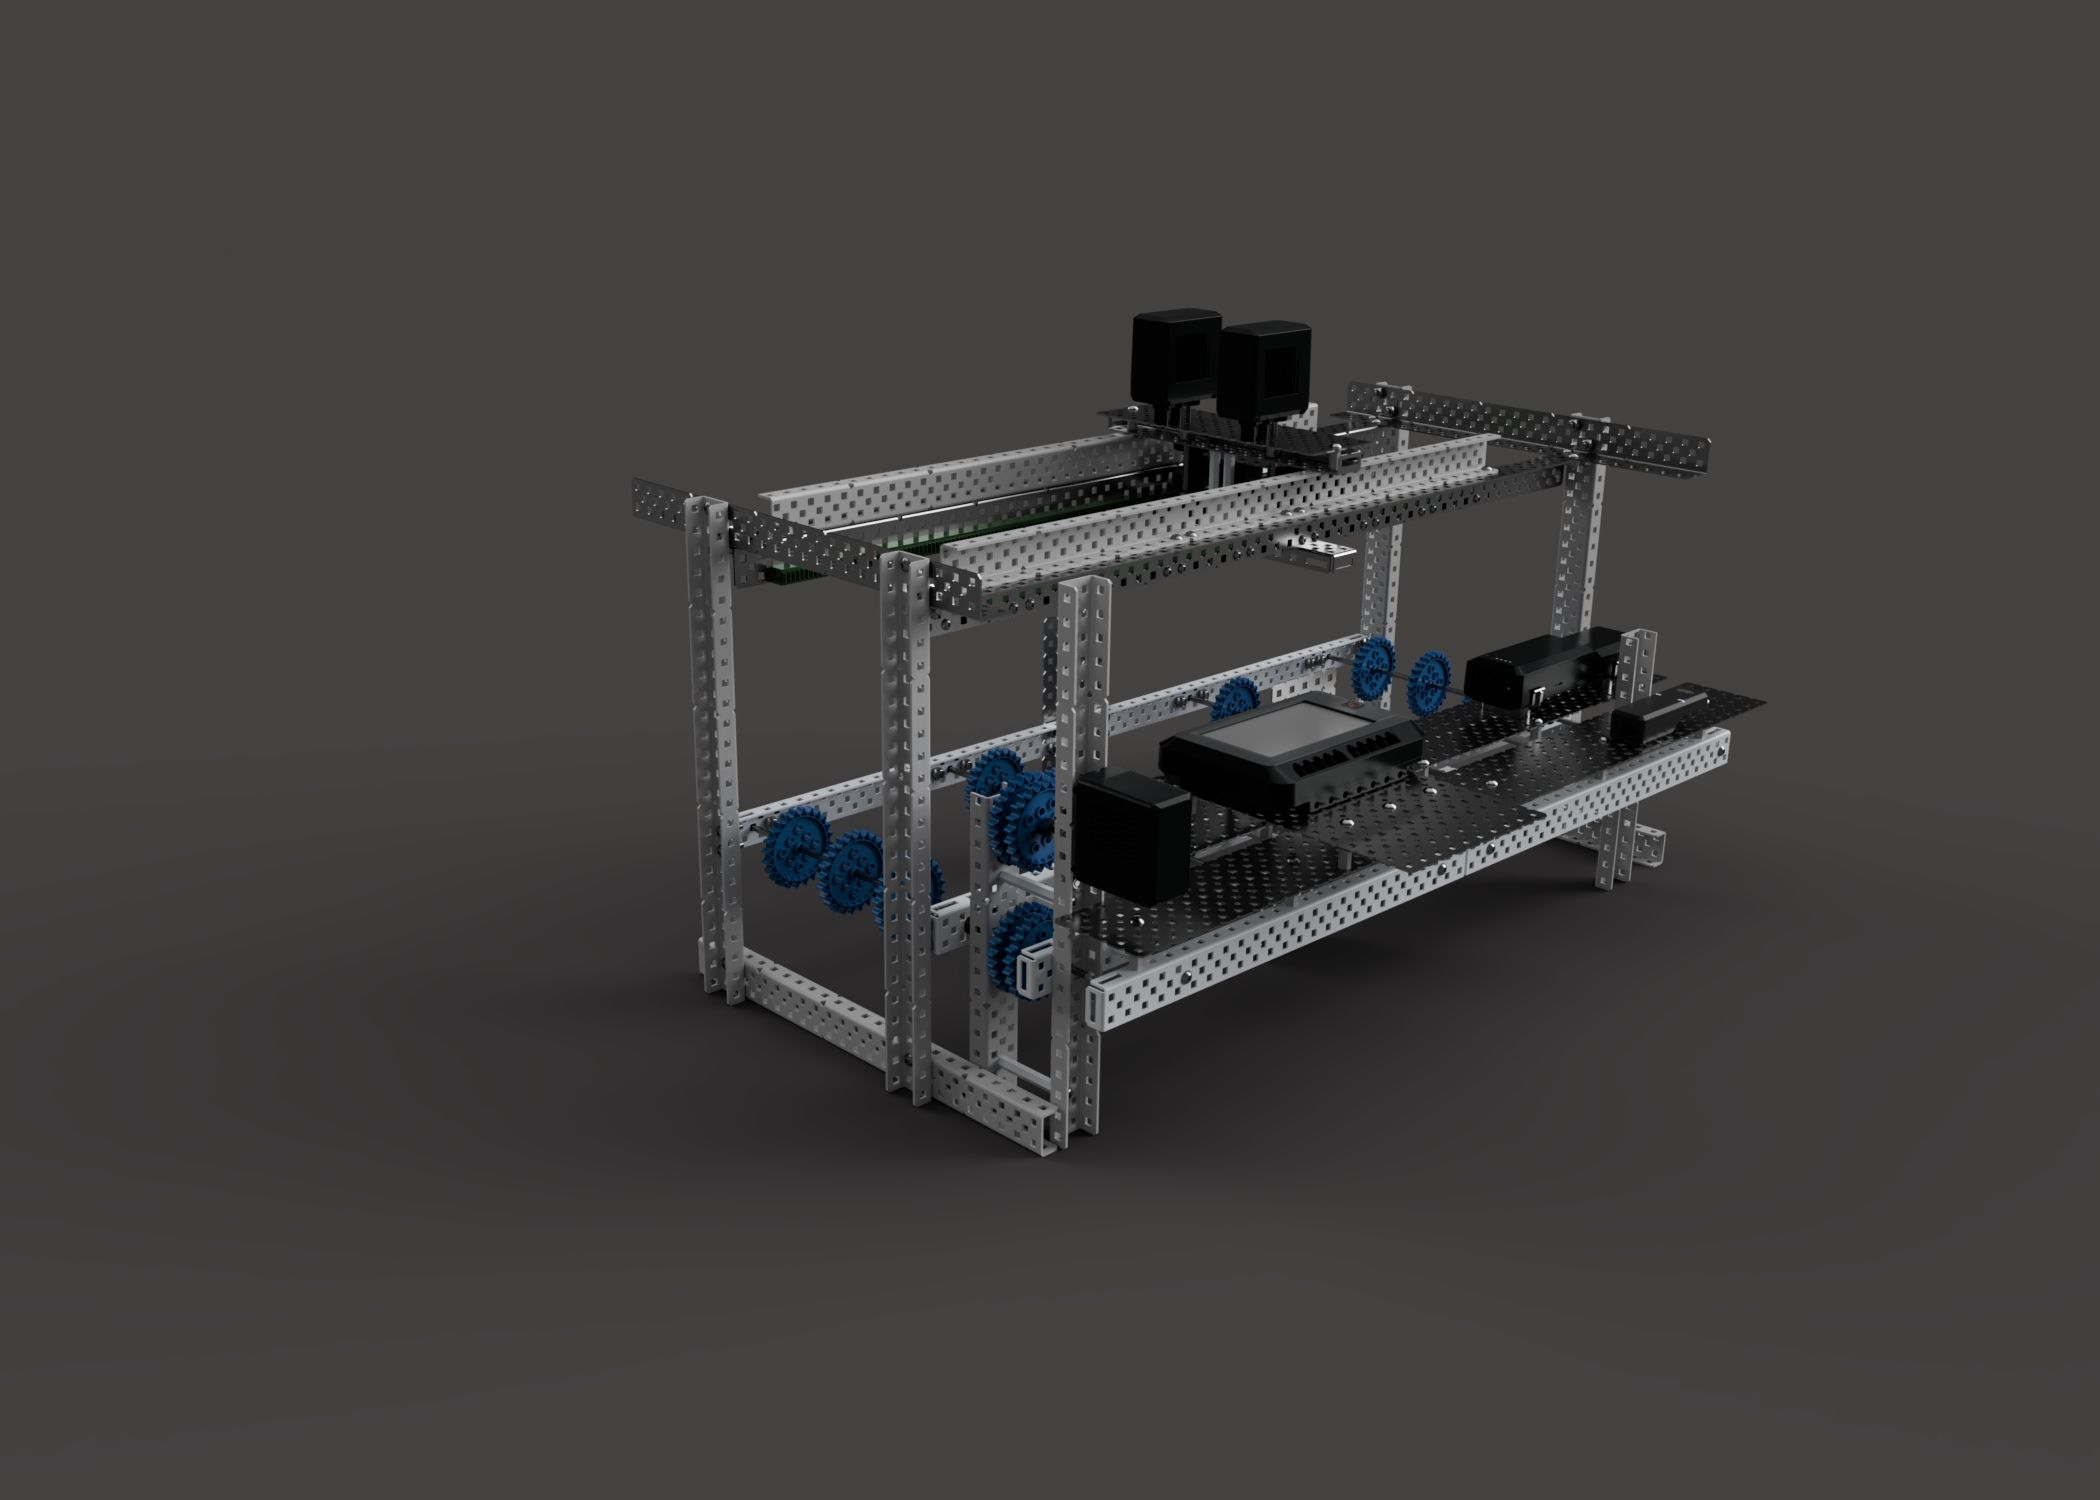 Automatic-machine---based-on-image-processing---v5-vex-robotics-lucas-ll-3500-3500